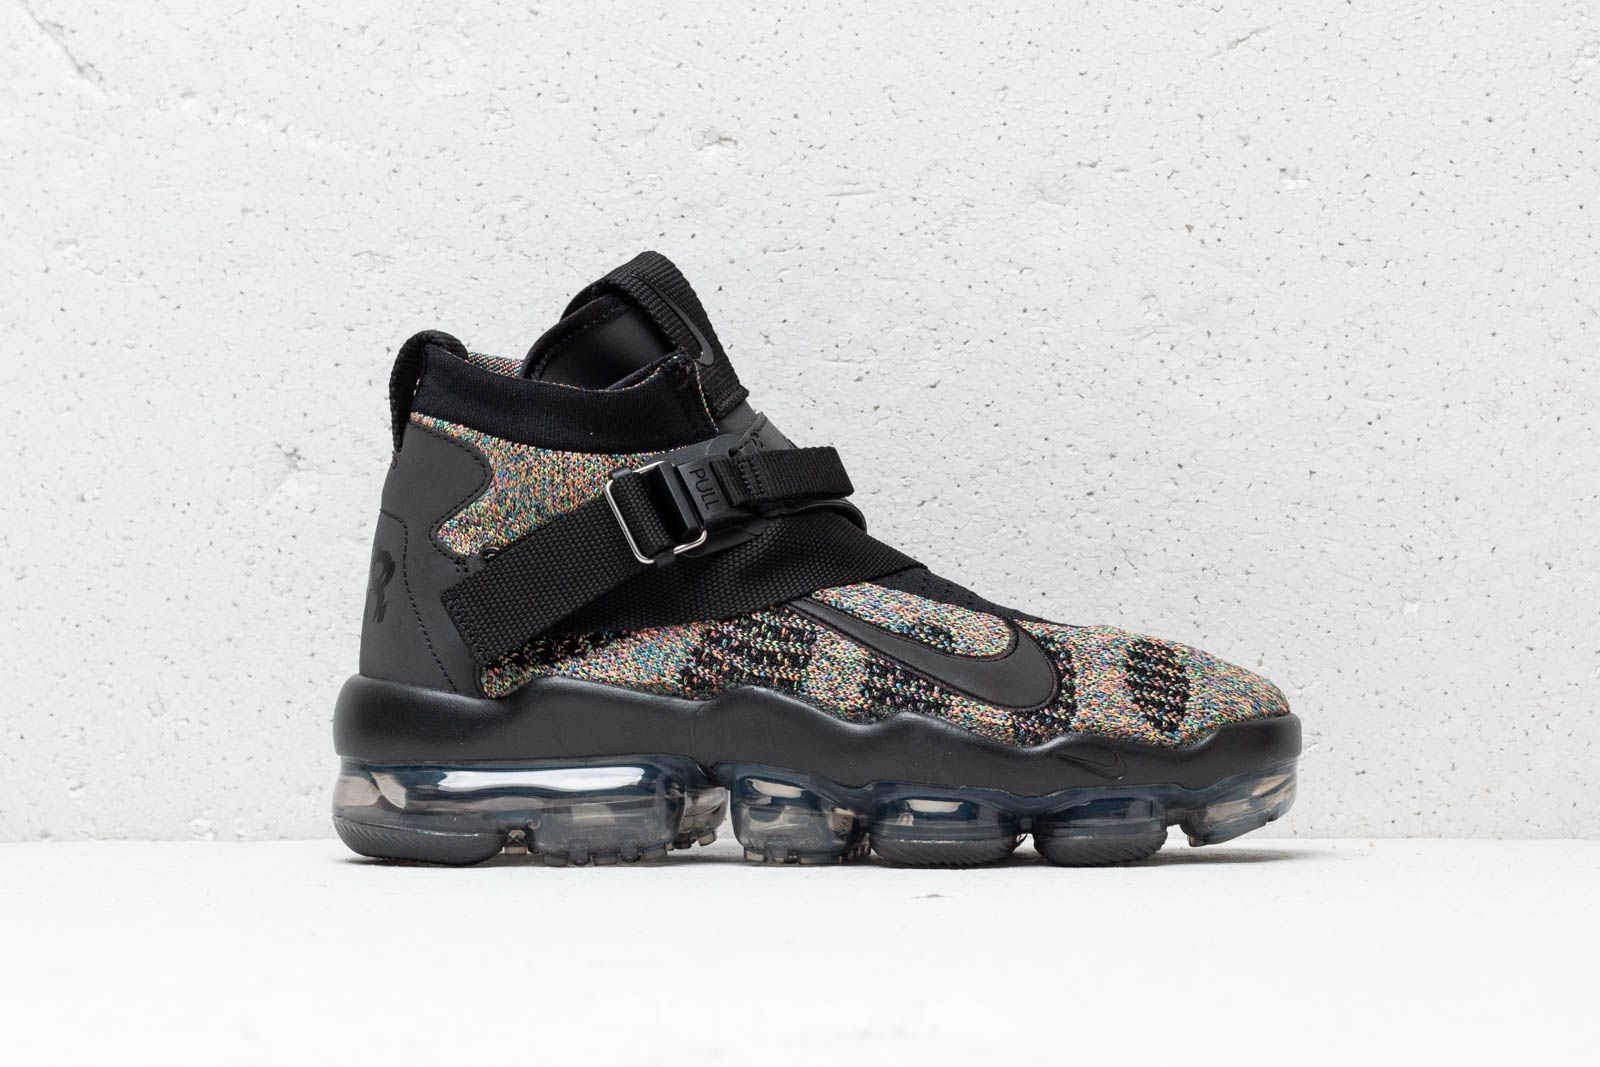 promo code 1fd17 1c166 Nike Air Vapormax Premier Flyknit Black/ Signal Blue-Green Strike at a  great price